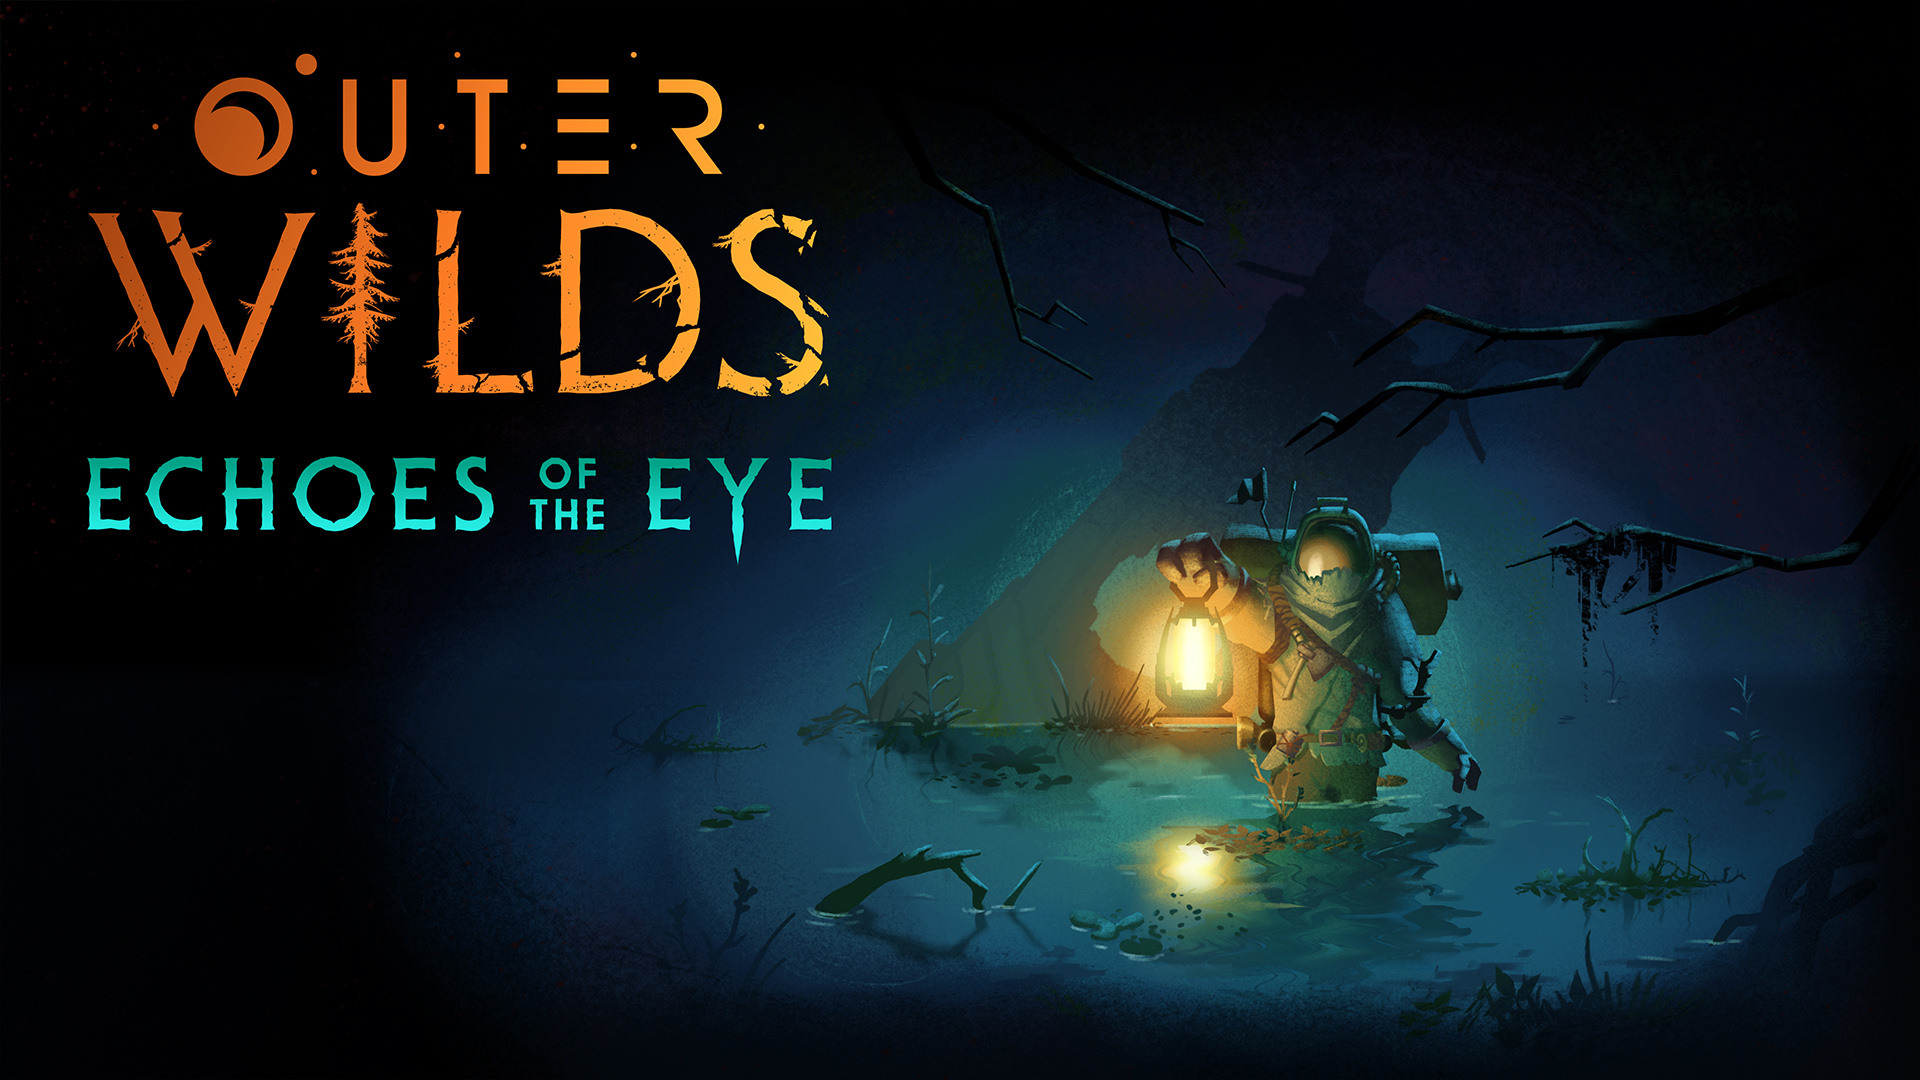 'Outer Wilds: Echoes of the Eye' is an expansion of a modern classic